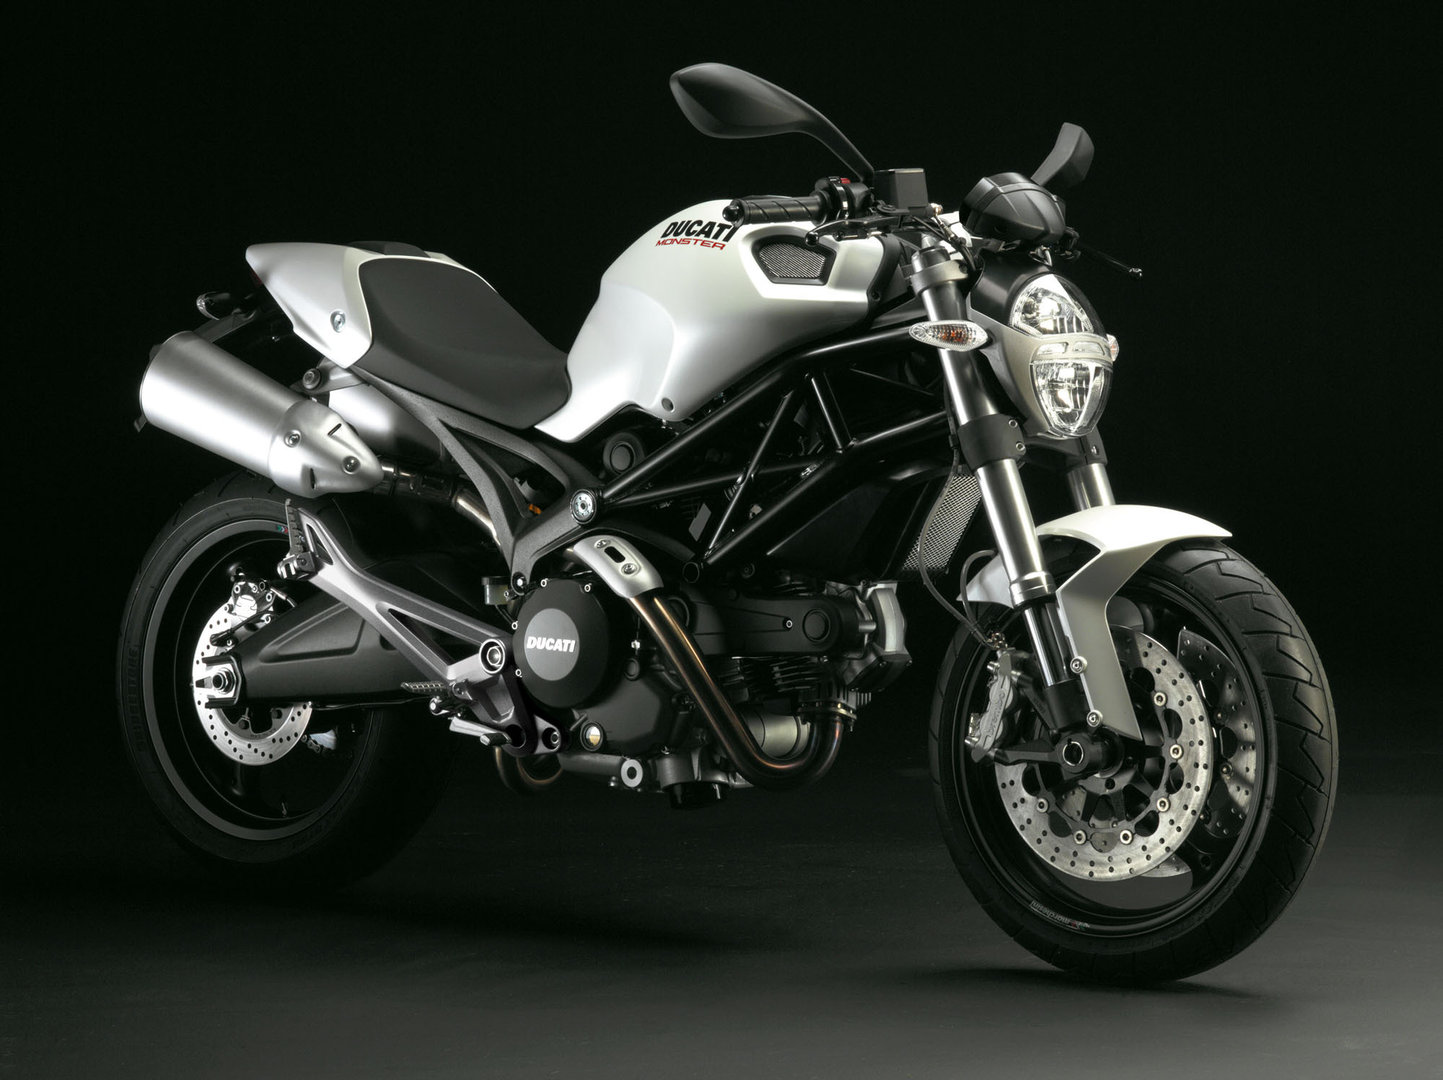 DUCATI MONSTER 696 /ABS 35kw - CARNET A2